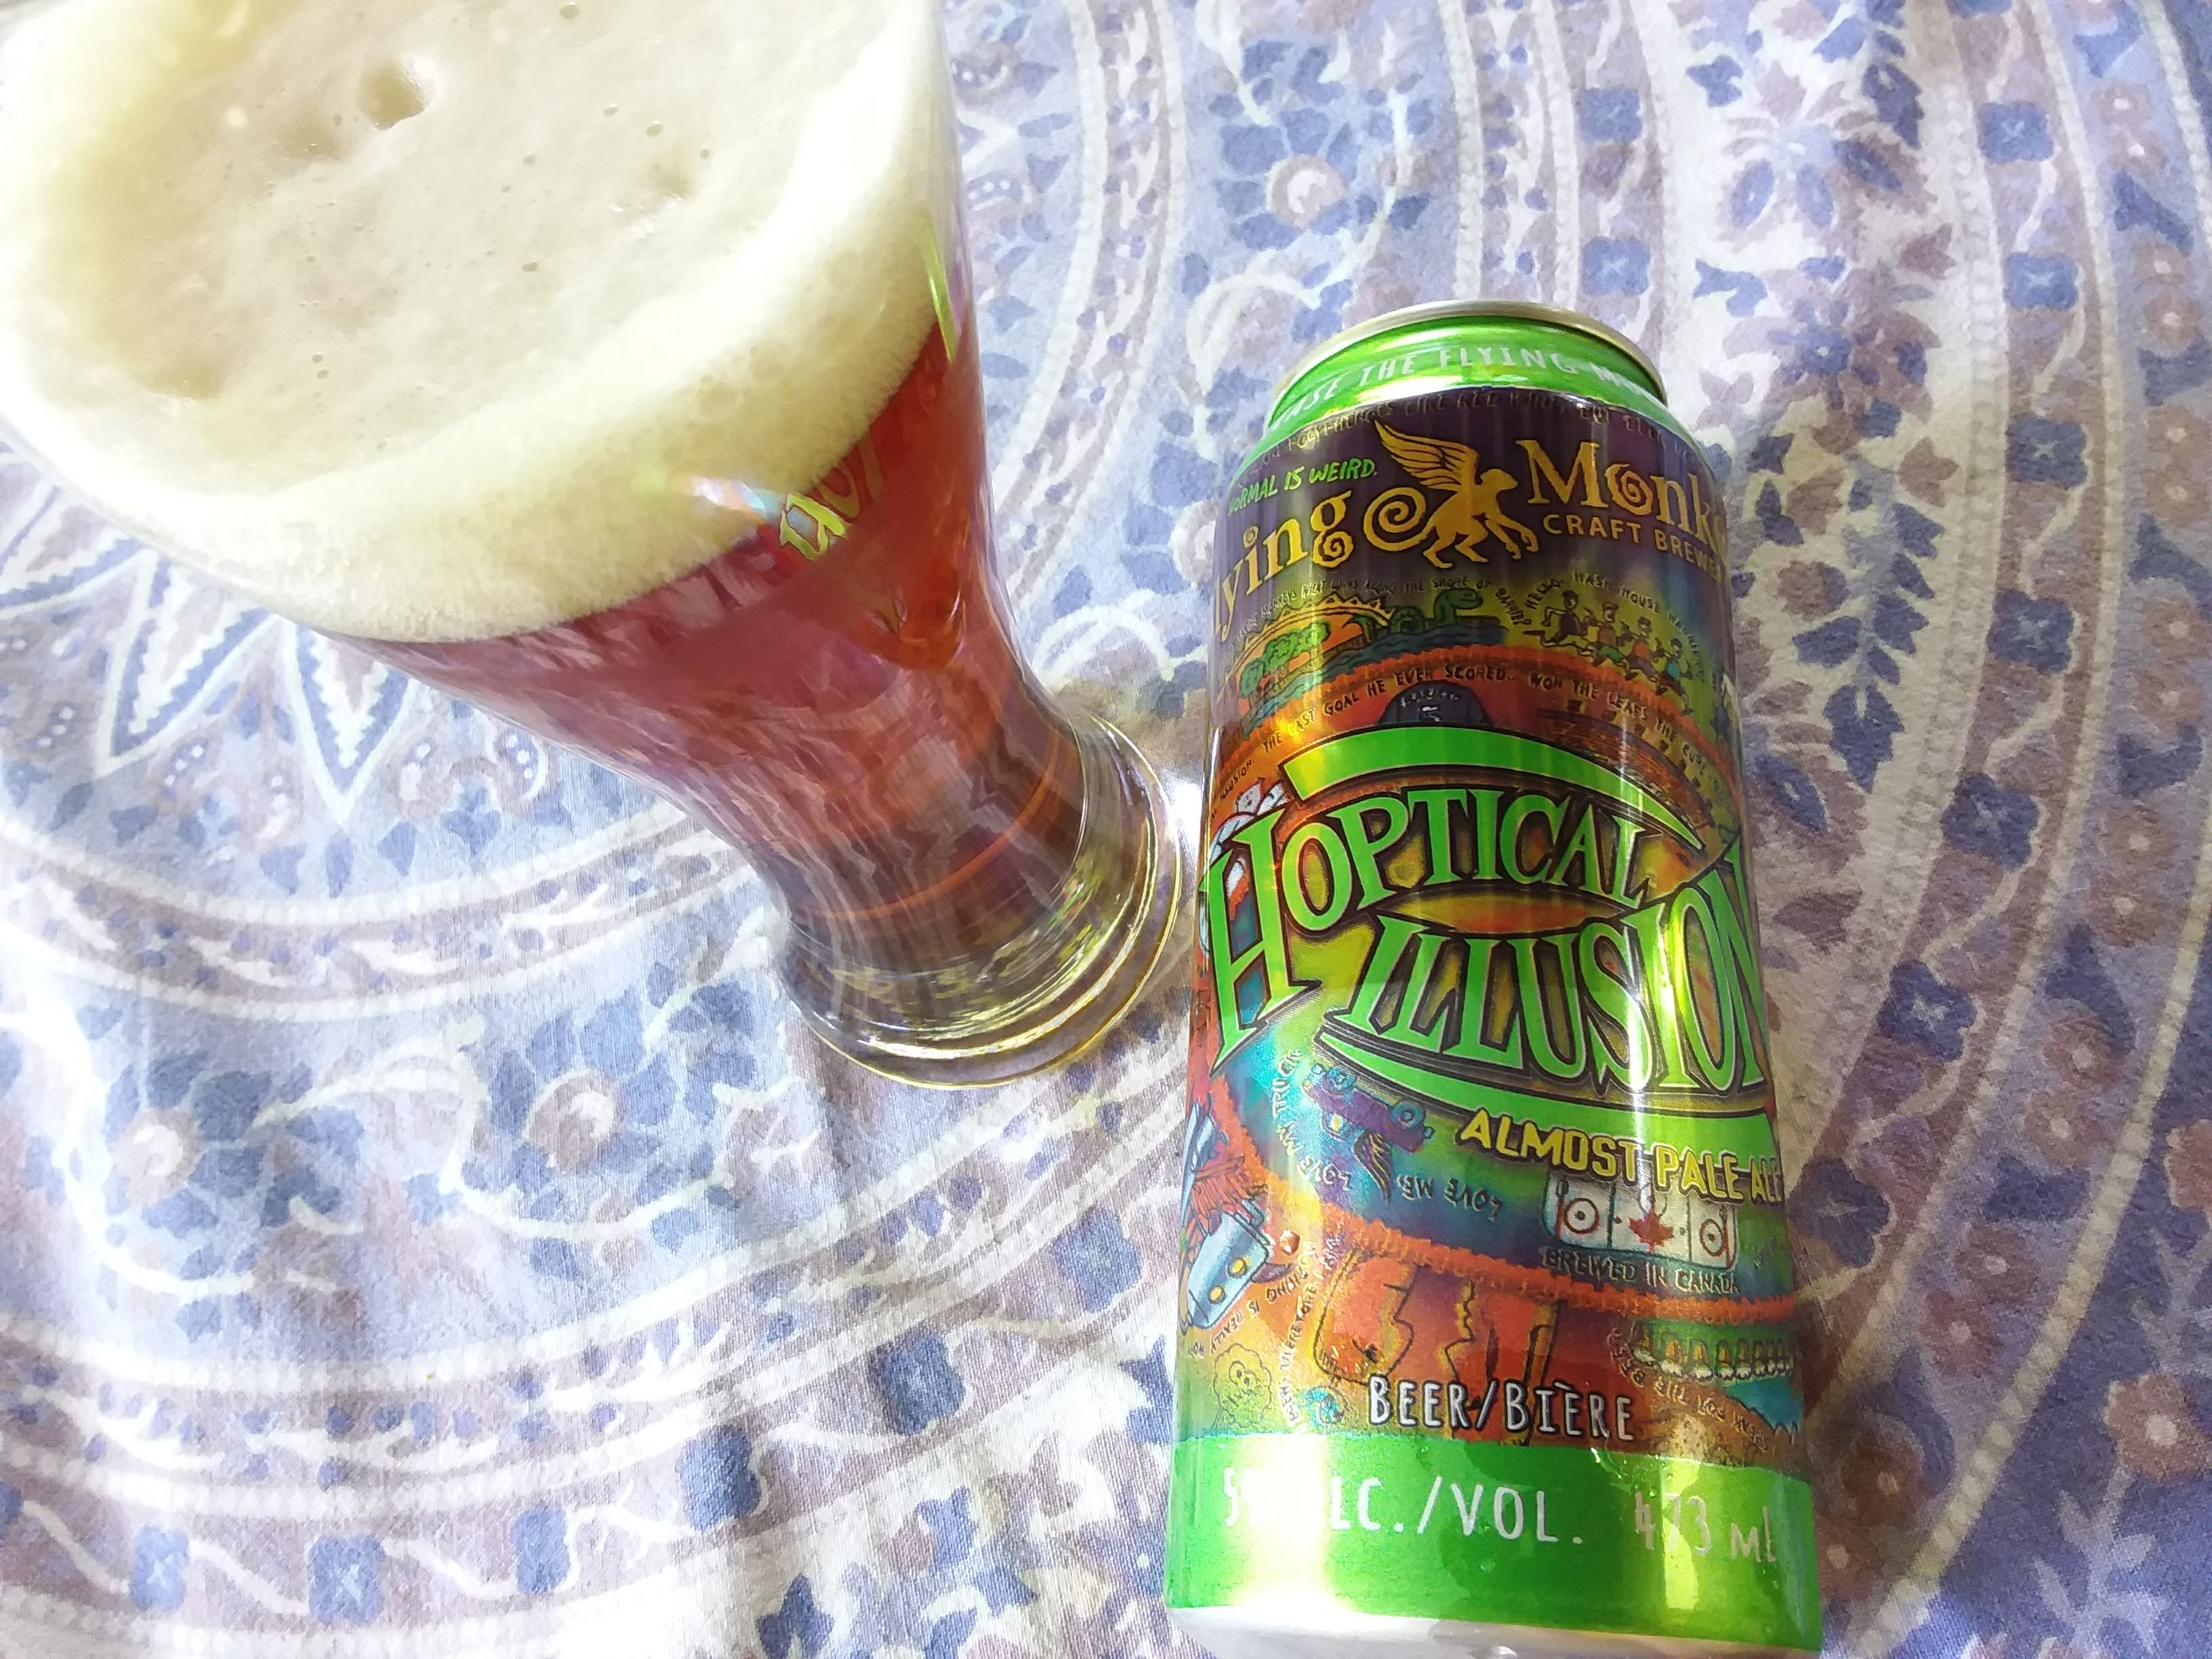 Flying Monkey Hoptical Illusion Almost Pale Ale